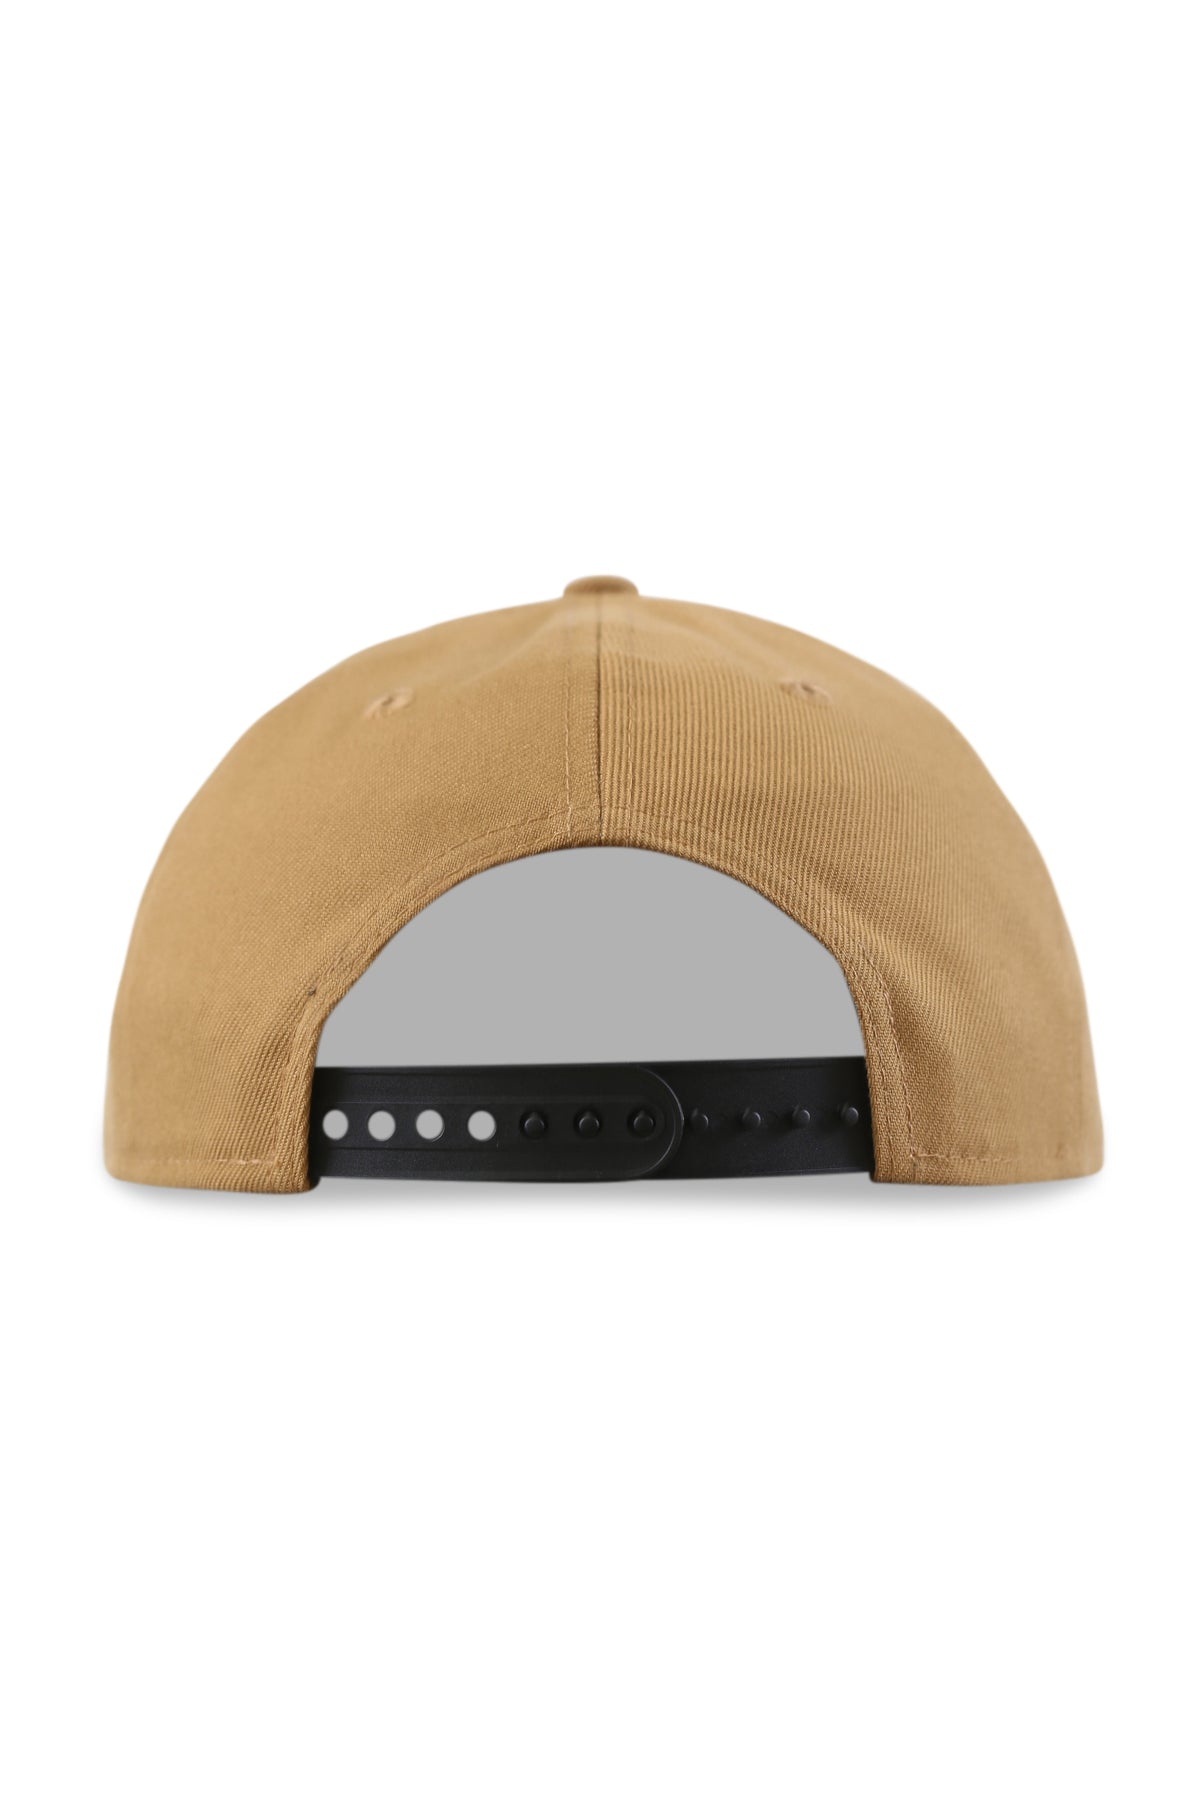 New Era 940 LV Raiders Wheat/Black Snapback Back